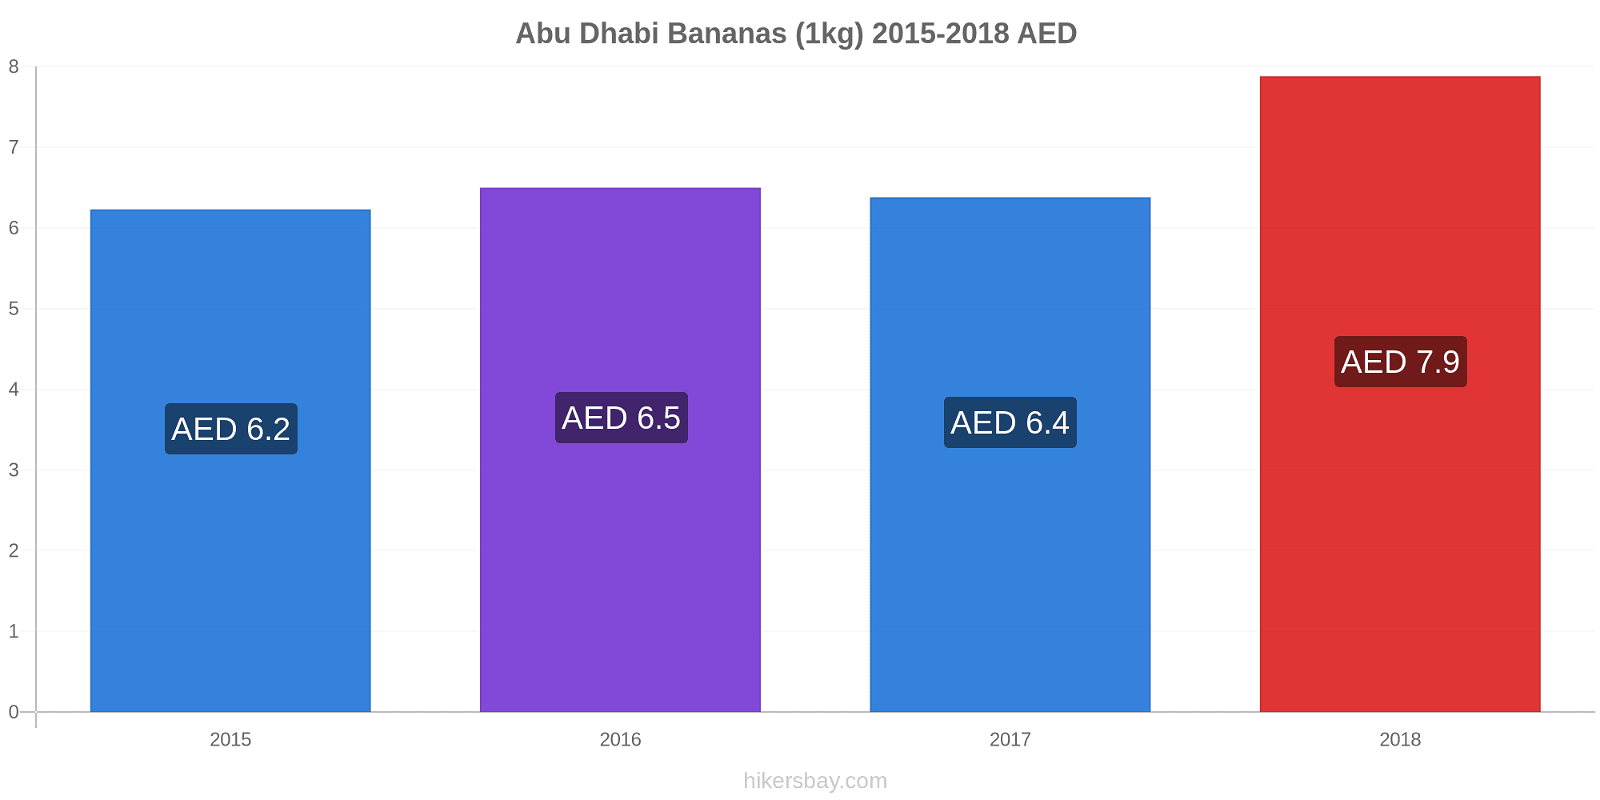 Abu Dhabi price changes Bananas (1kg) hikersbay.com